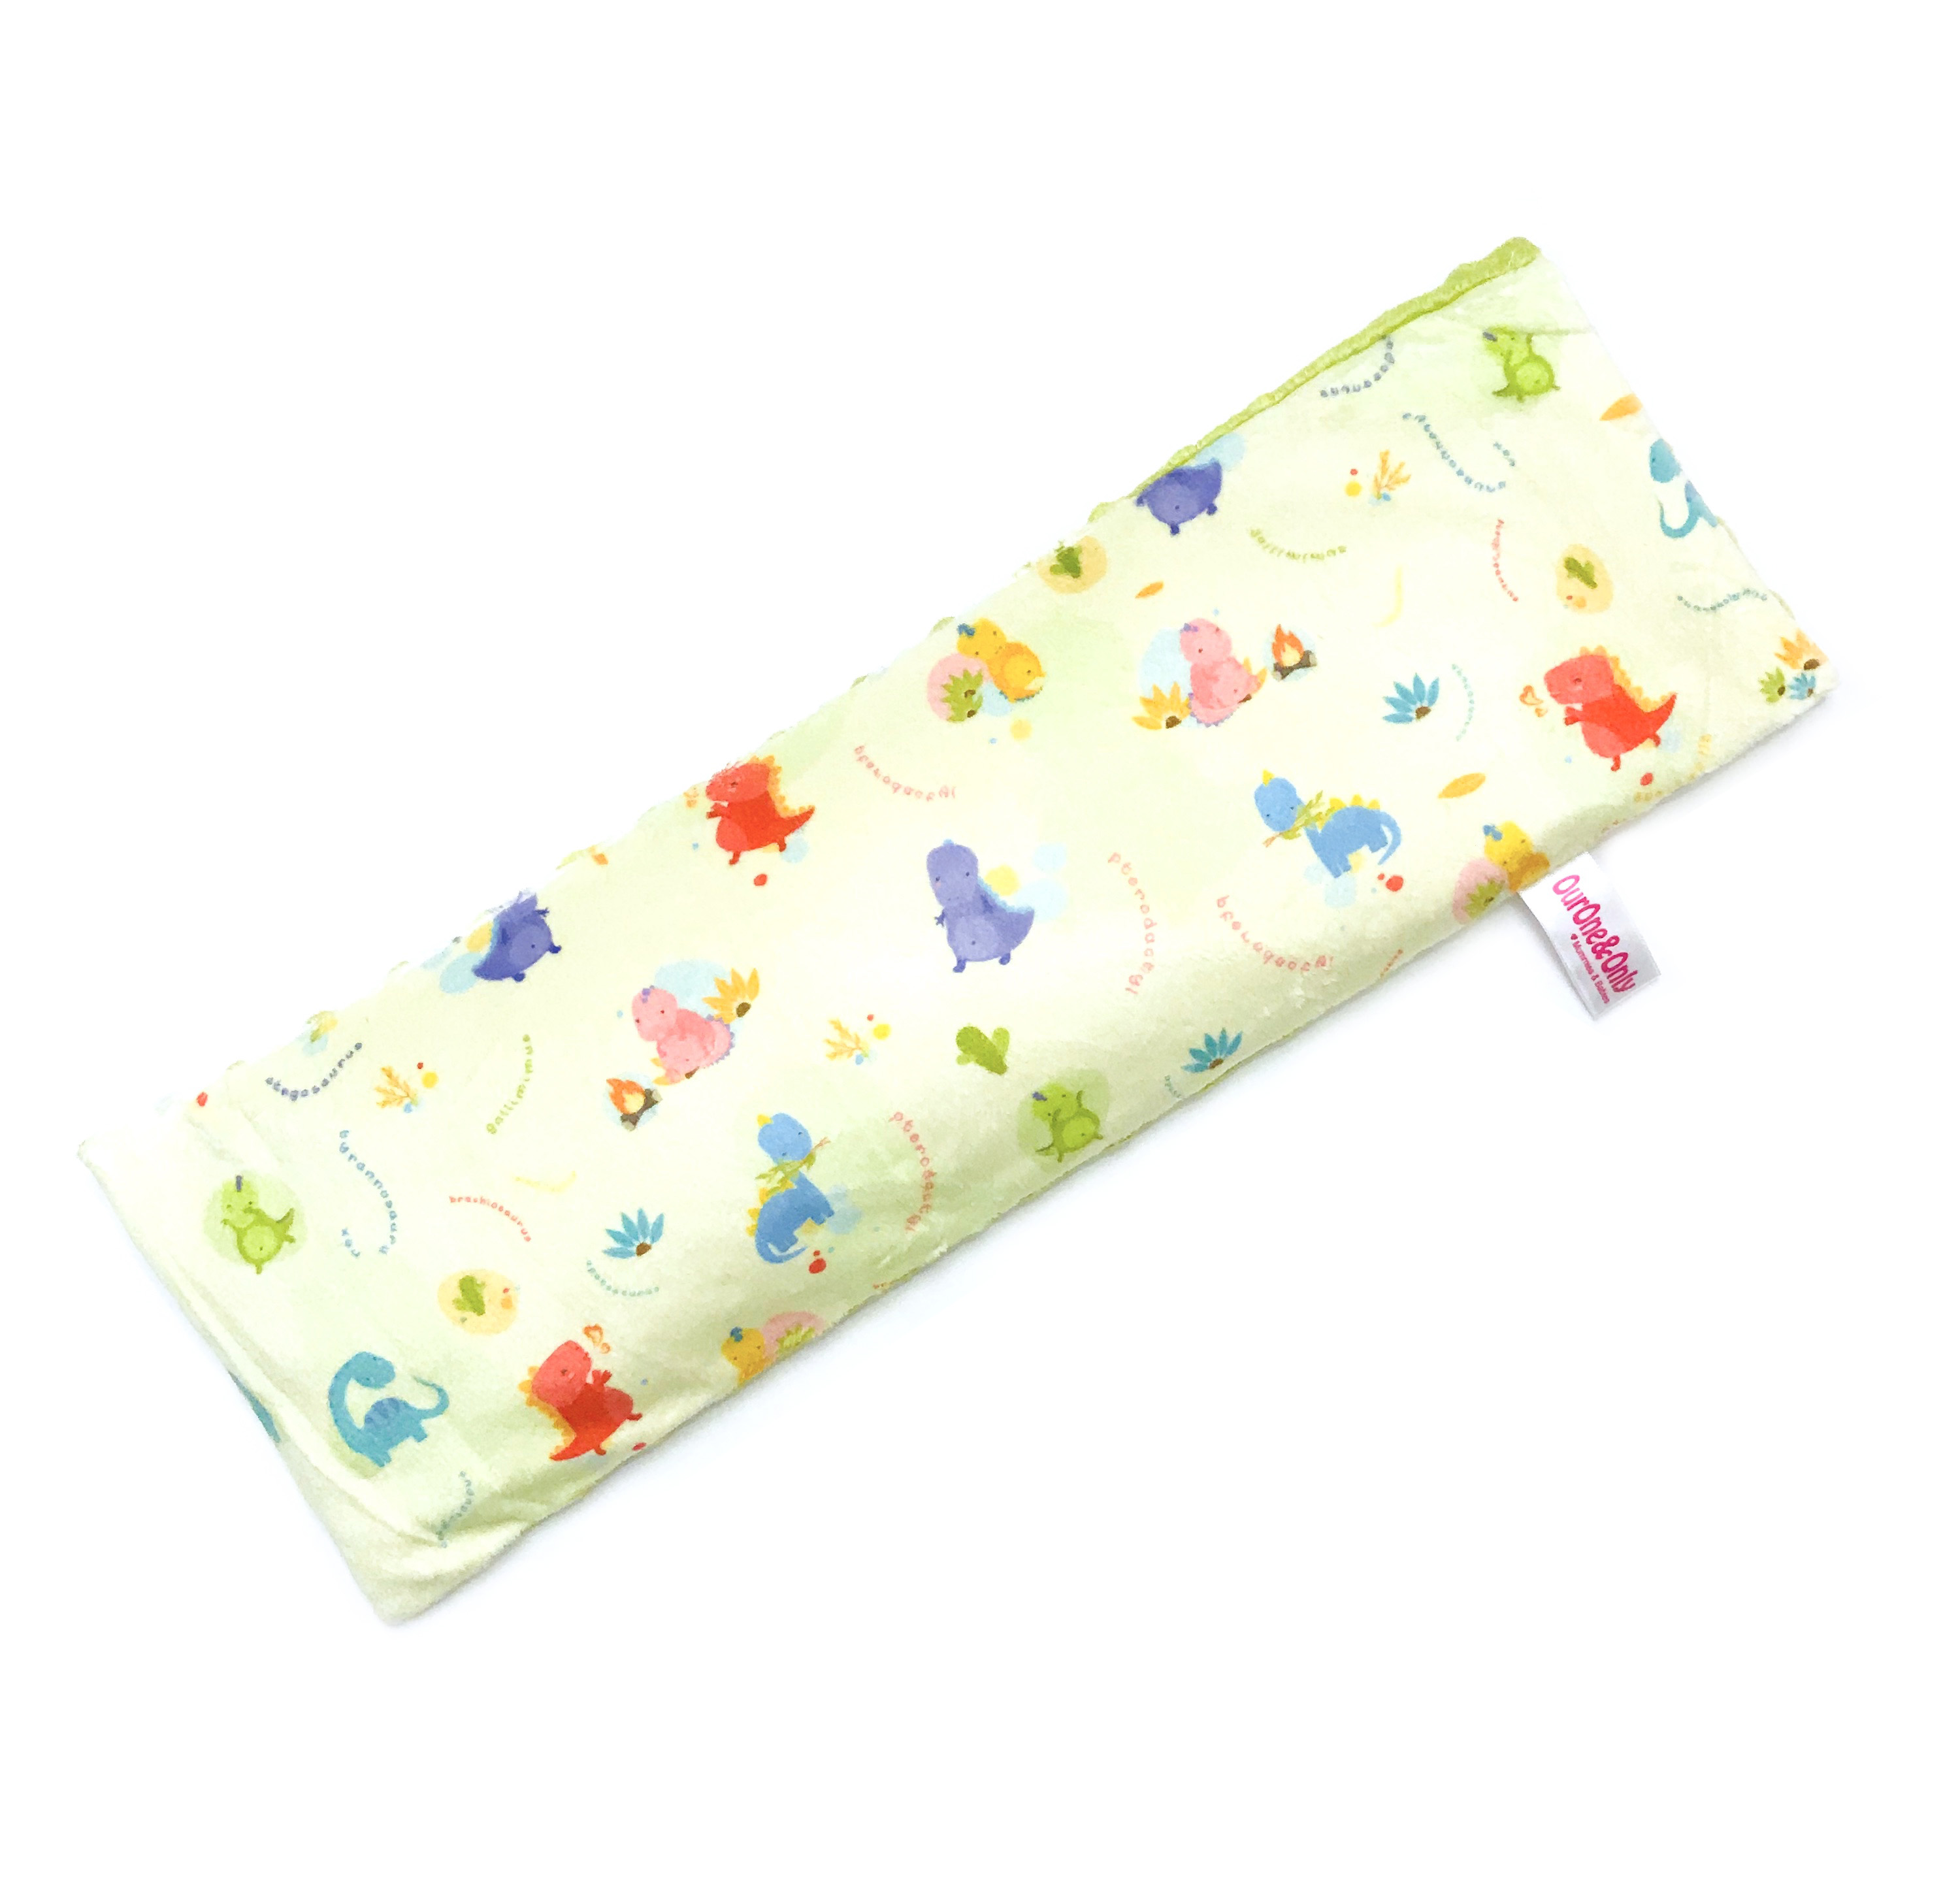 OurOne&Only Full Minky Husk Long Pillow FREE Extra Minky Pillow Case + $5 Online Voucher *ADDITIONAL Pillow Case for EARLY BIRD SPECIAL!!